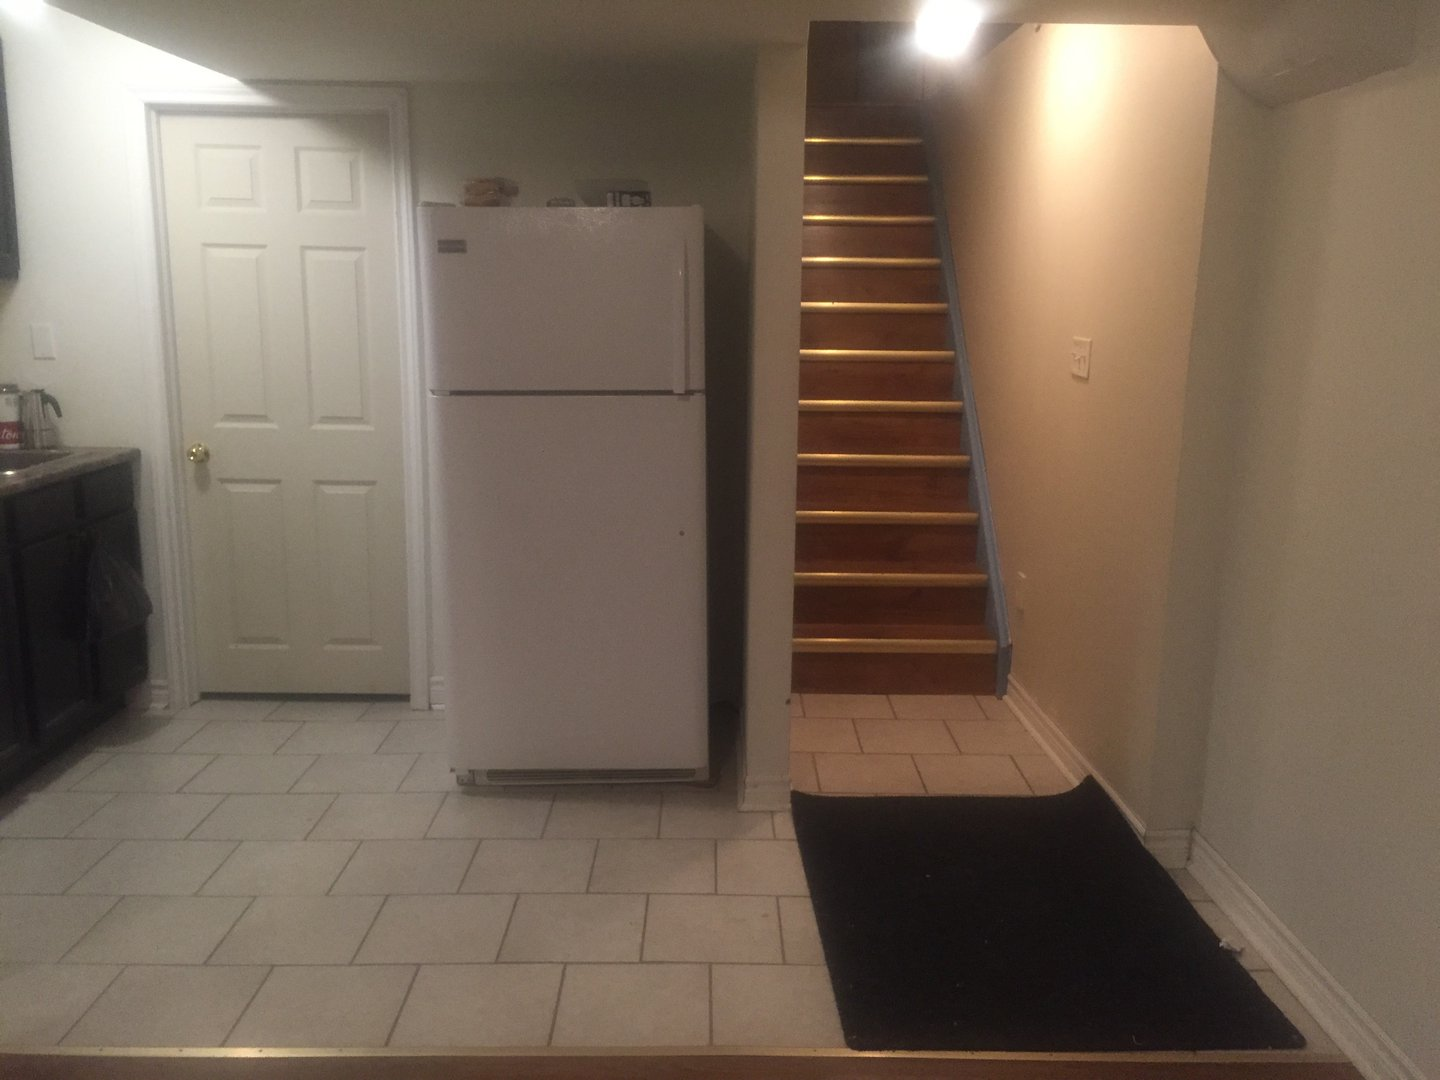 Apartment for rent at 57 Keats Terrace, Brampton, ON. This is the kitchen with tile floor.